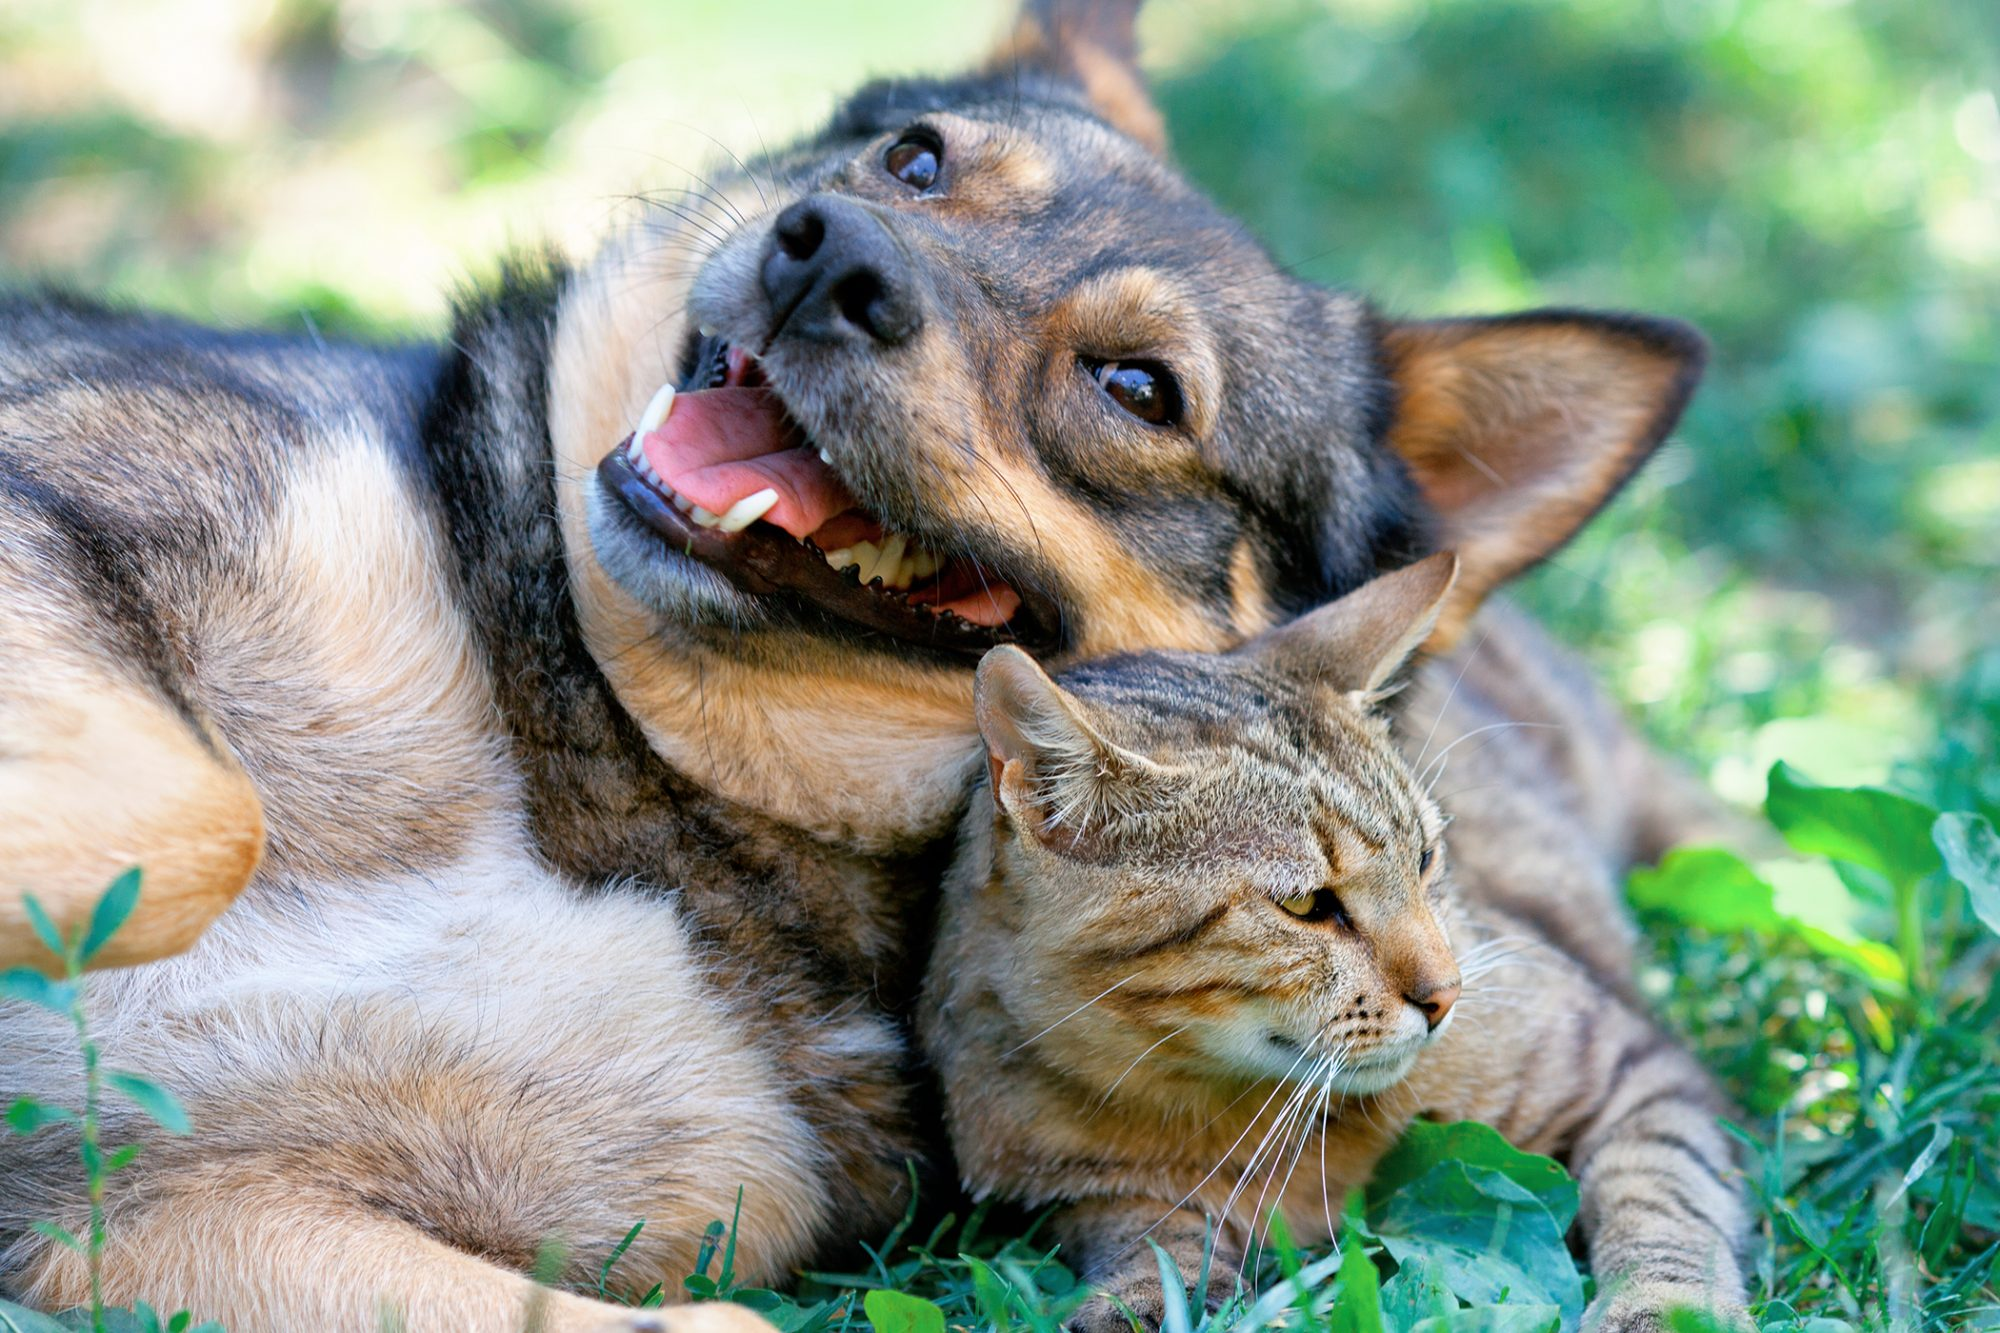 dog and cat playing together in grass